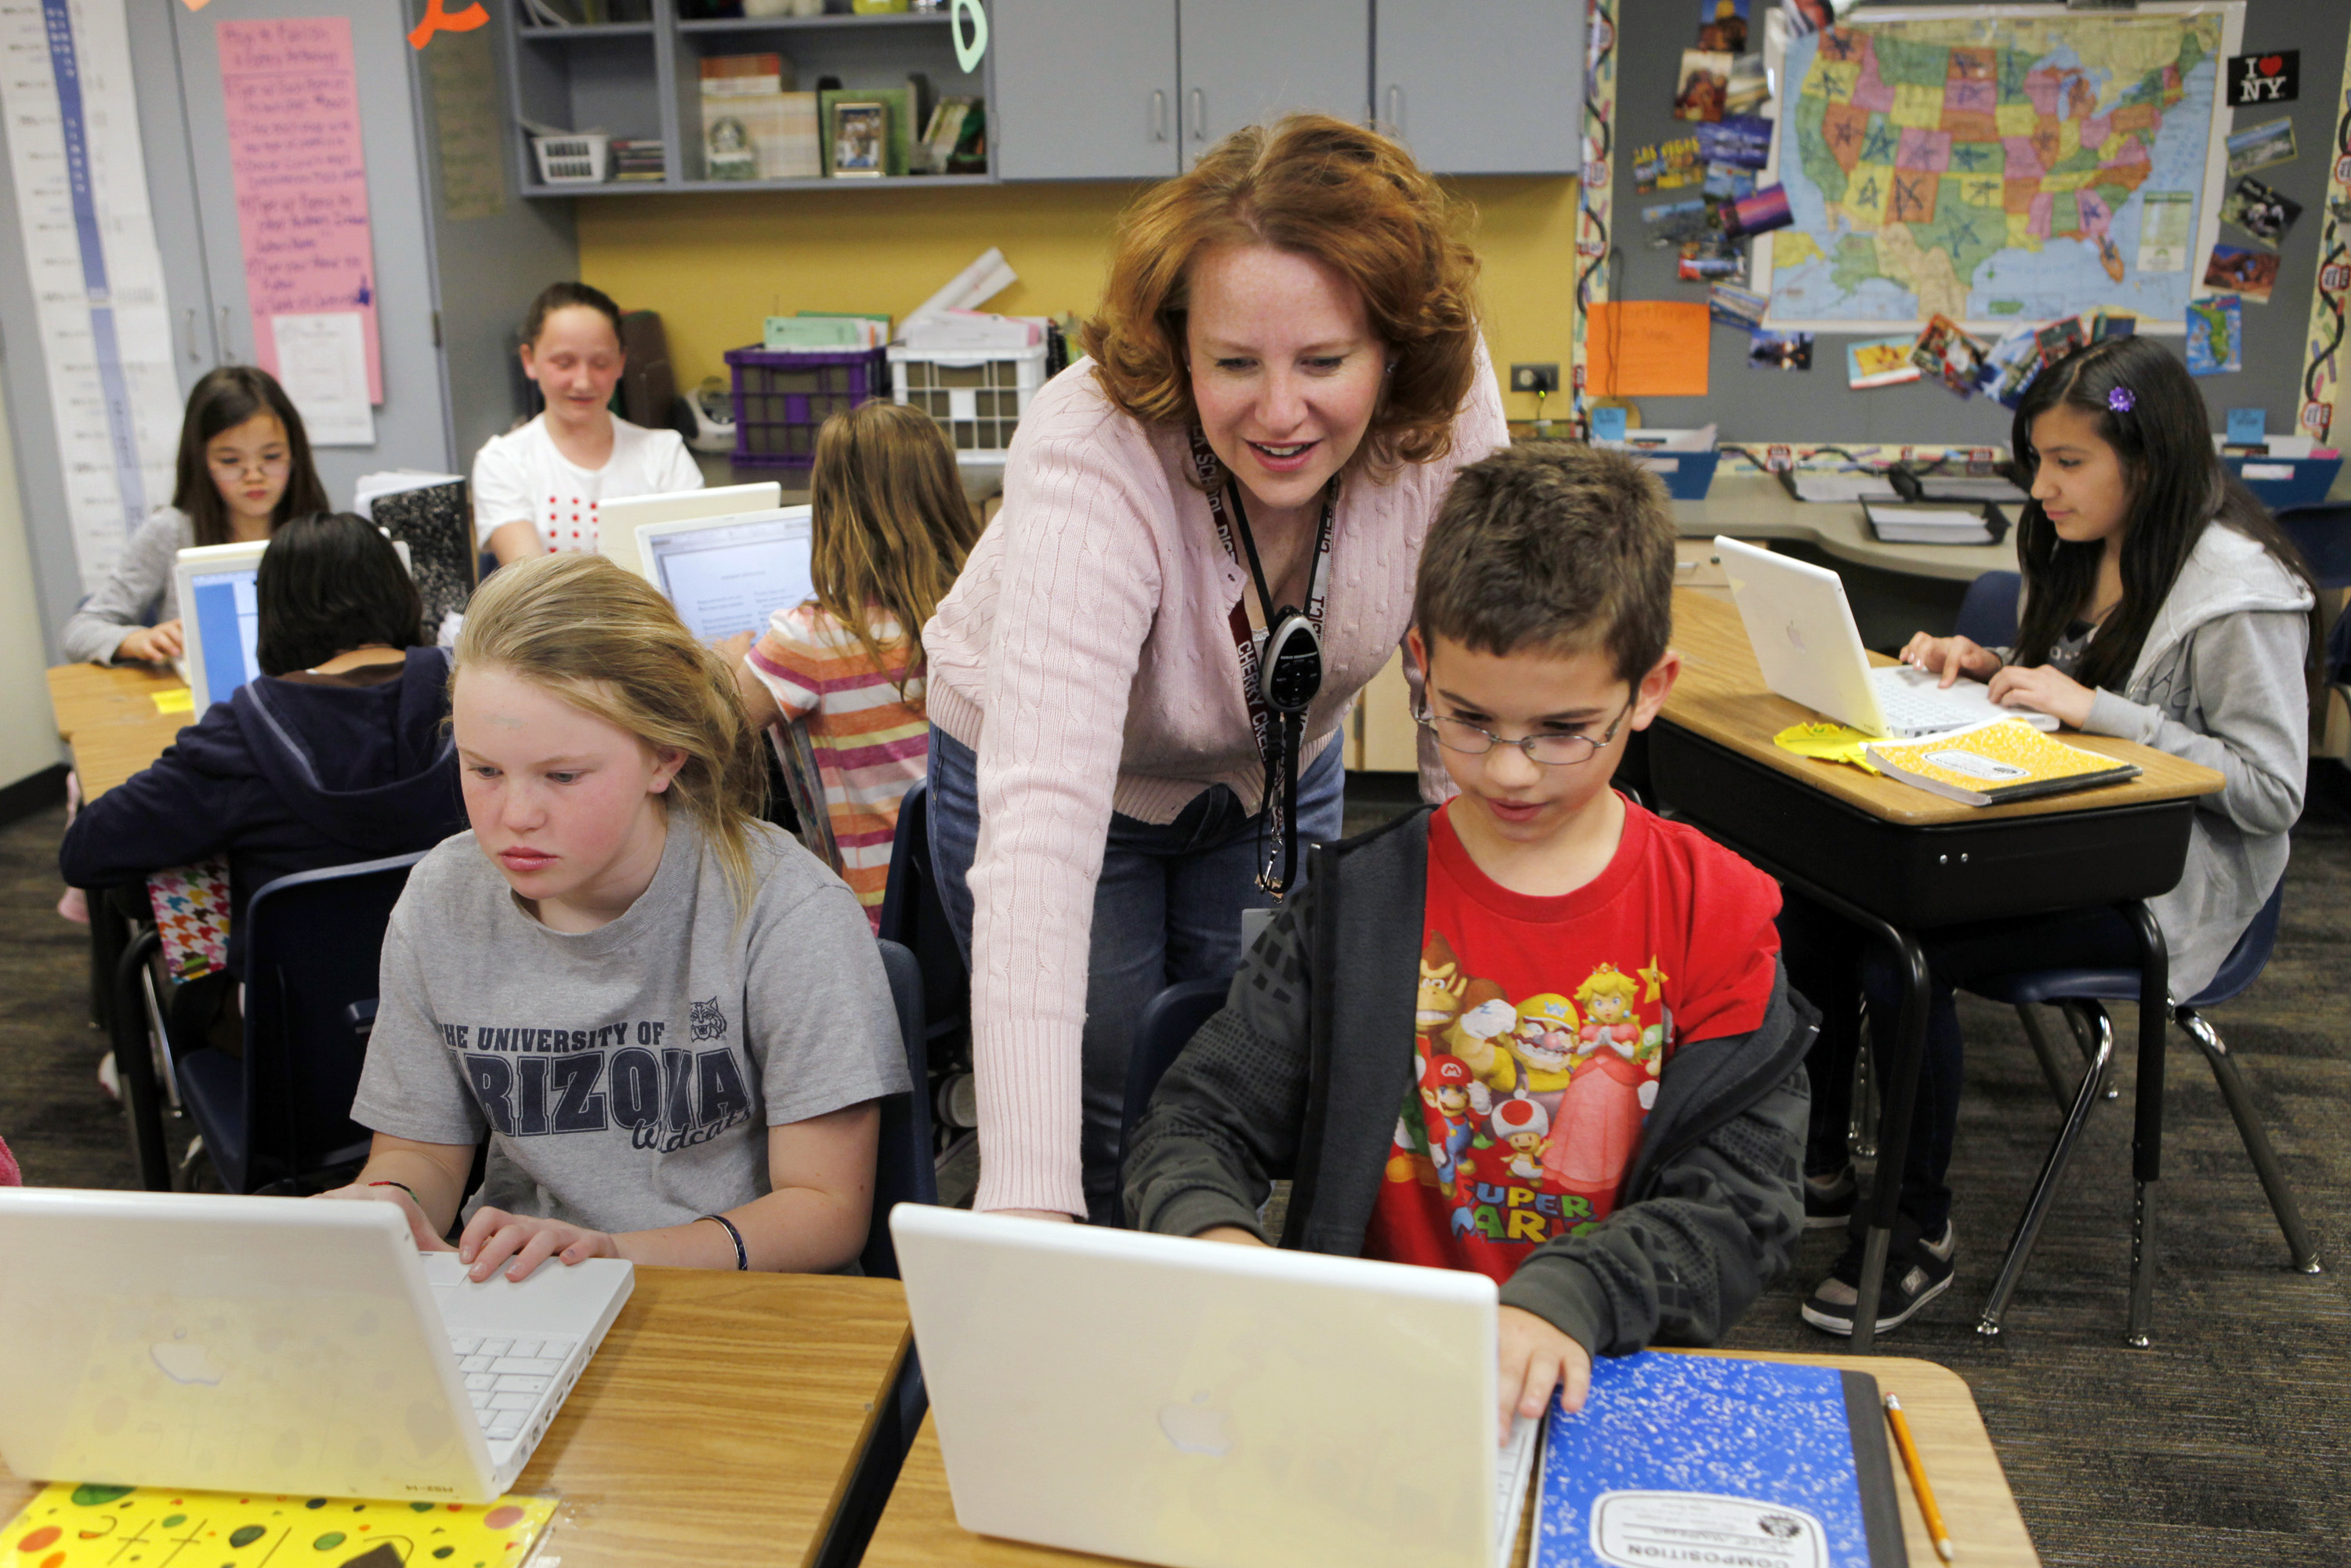 High Plains Elementary School teacher Jennifer Williford works with Colette Jackson and Skyler Matteson in her fifth grade class at the Englewood, Colorado school. Colorado has long debated the standardized tests it gives schoolchildren.